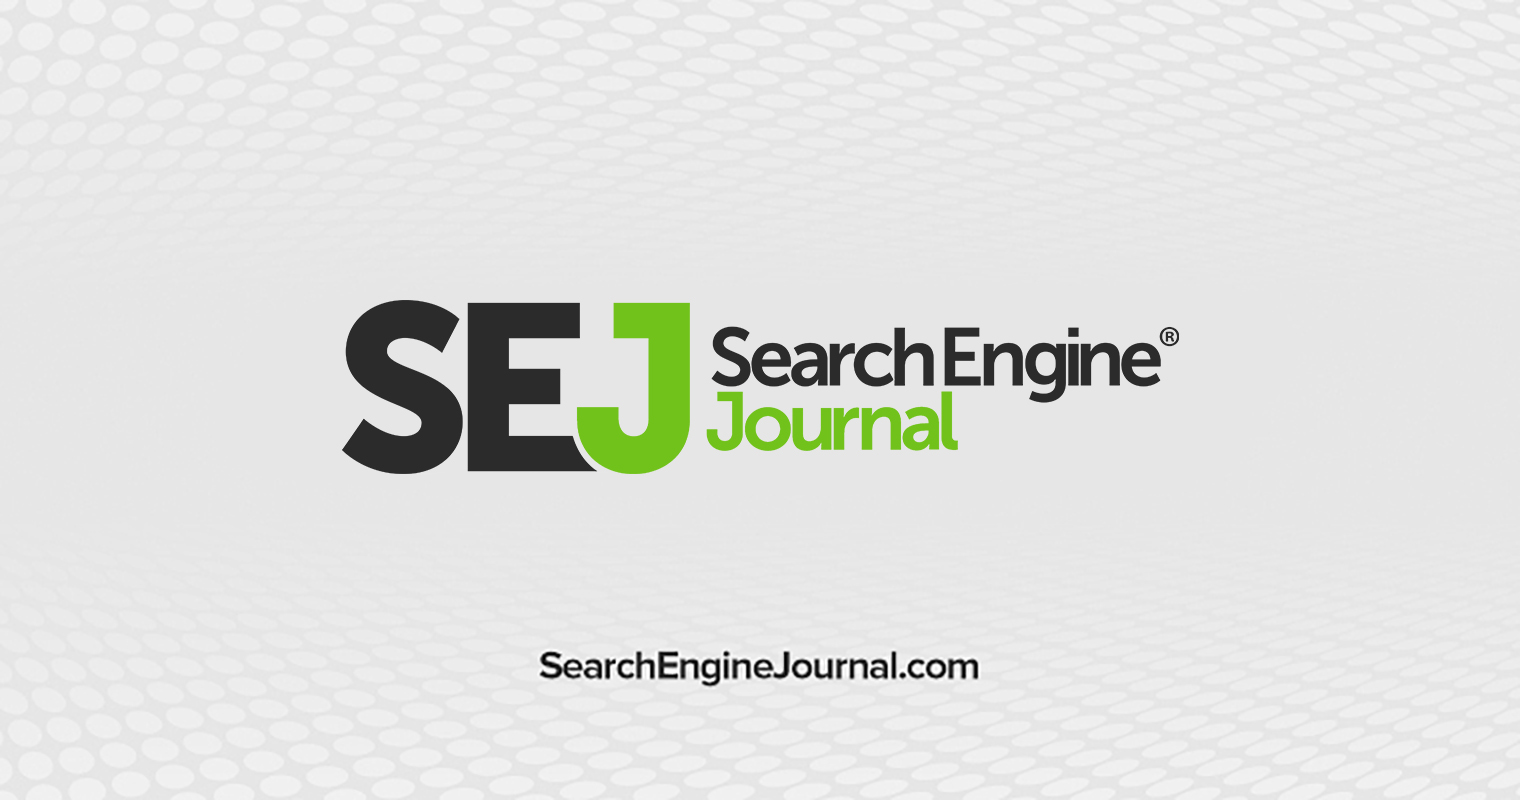 Comments on Search Engine Journal : Registration?